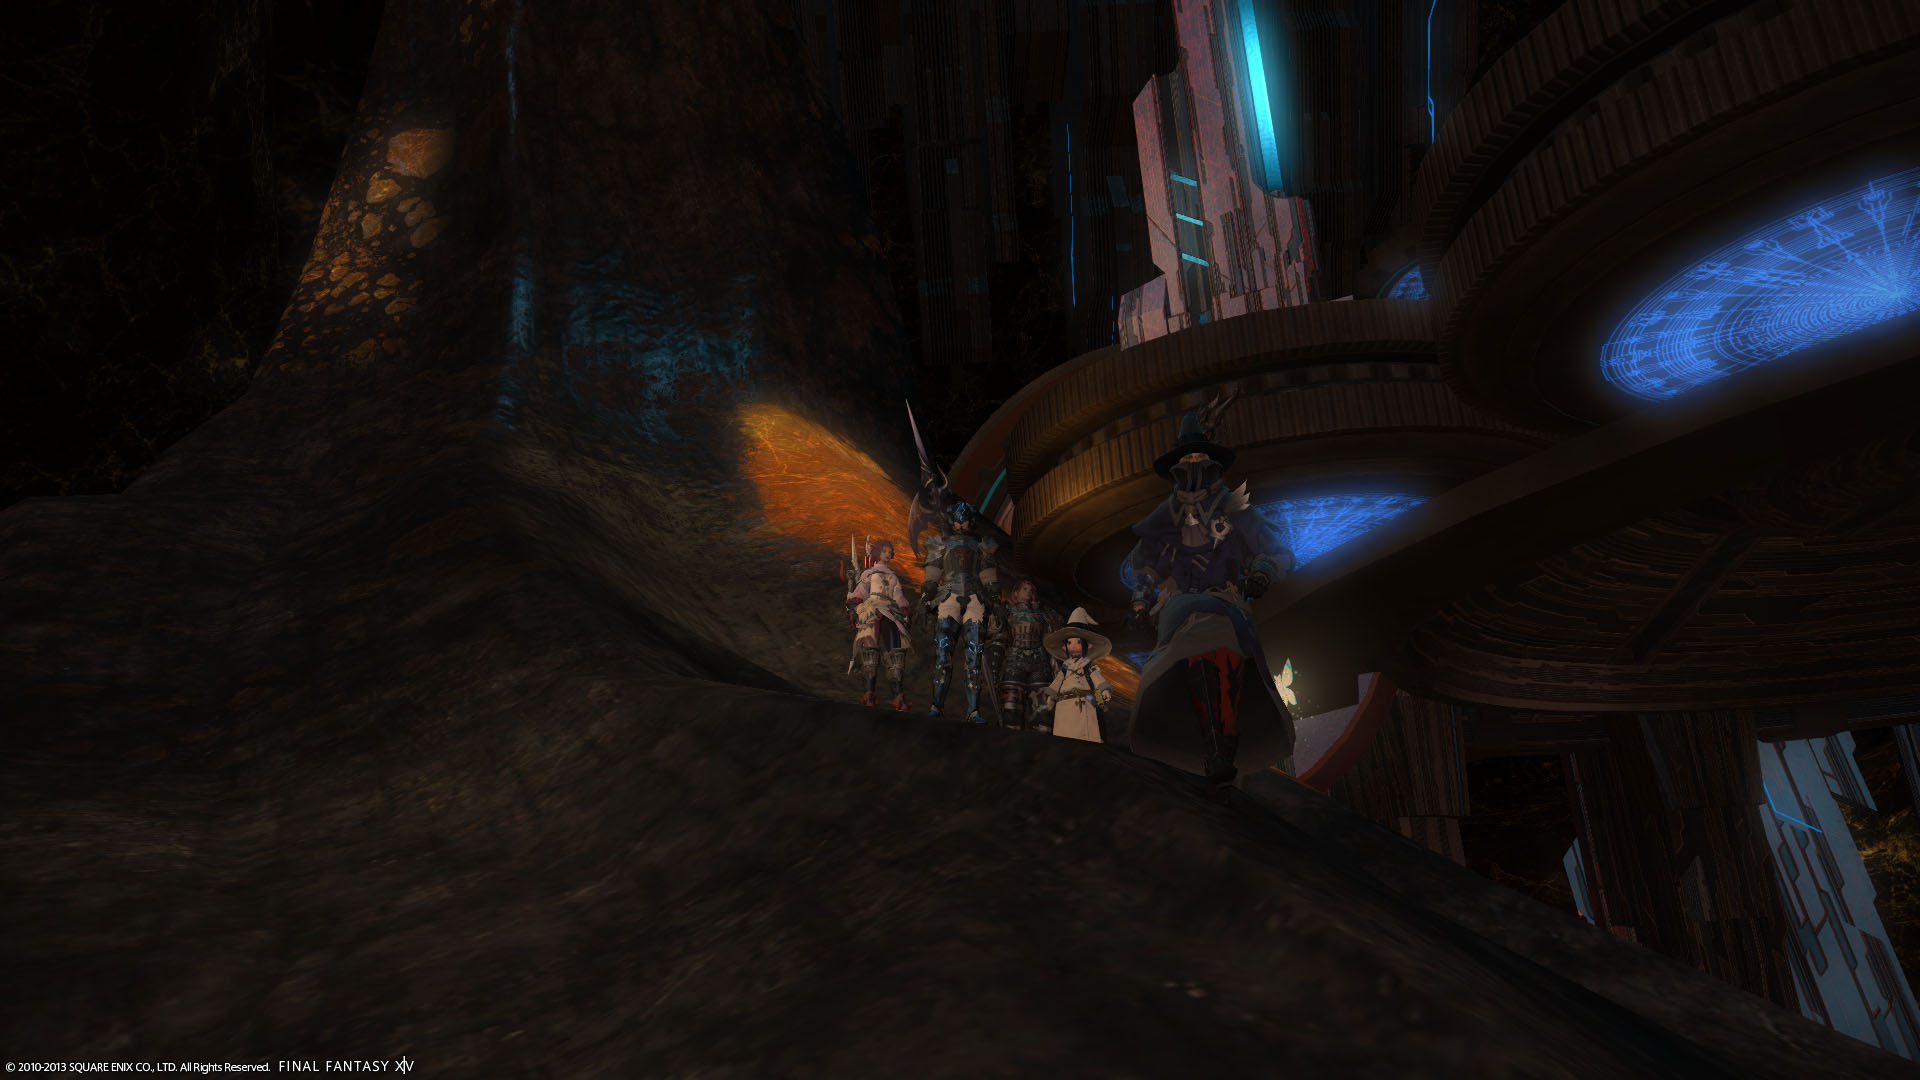 qeomash ffxiv scaling them hurts down bucket size file need bigger 1920 stupid reborn screenshot thread realm fantasy 1017 somewhat less with release final